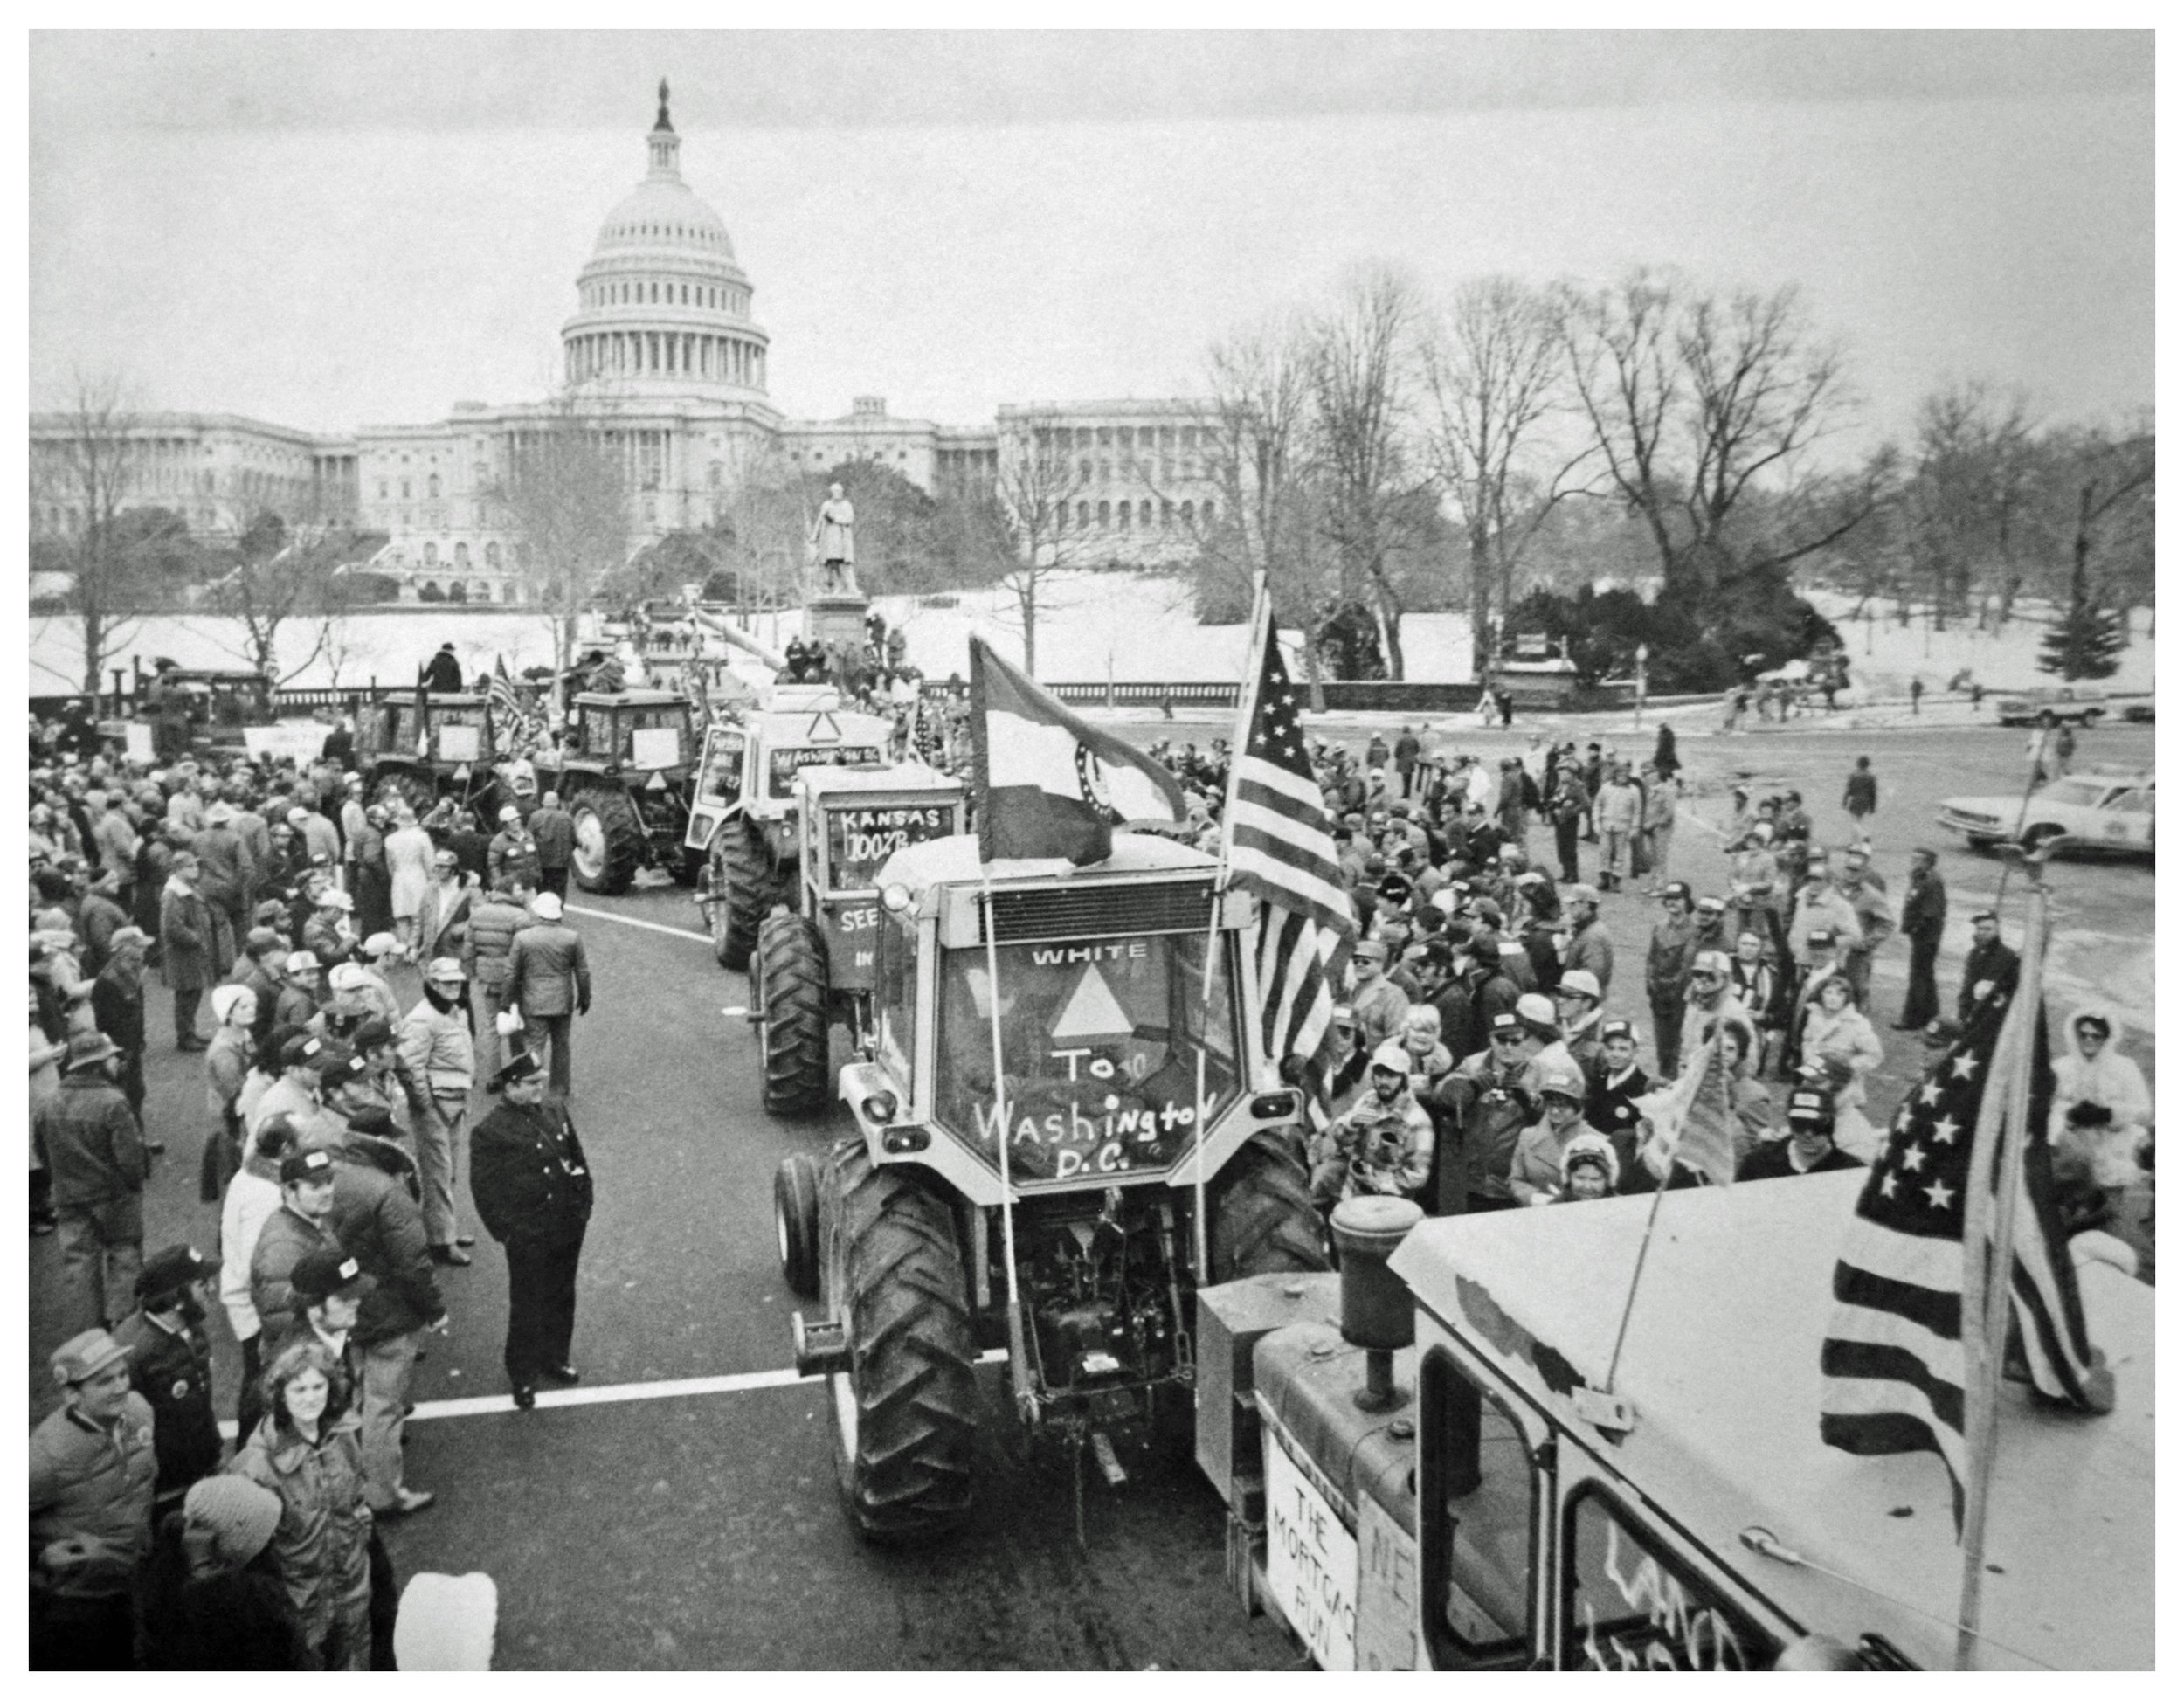 Farmers' tractorcade protest on Washington, D.C., in 1978. Photo via D.C. Public Library Washington Star Collection